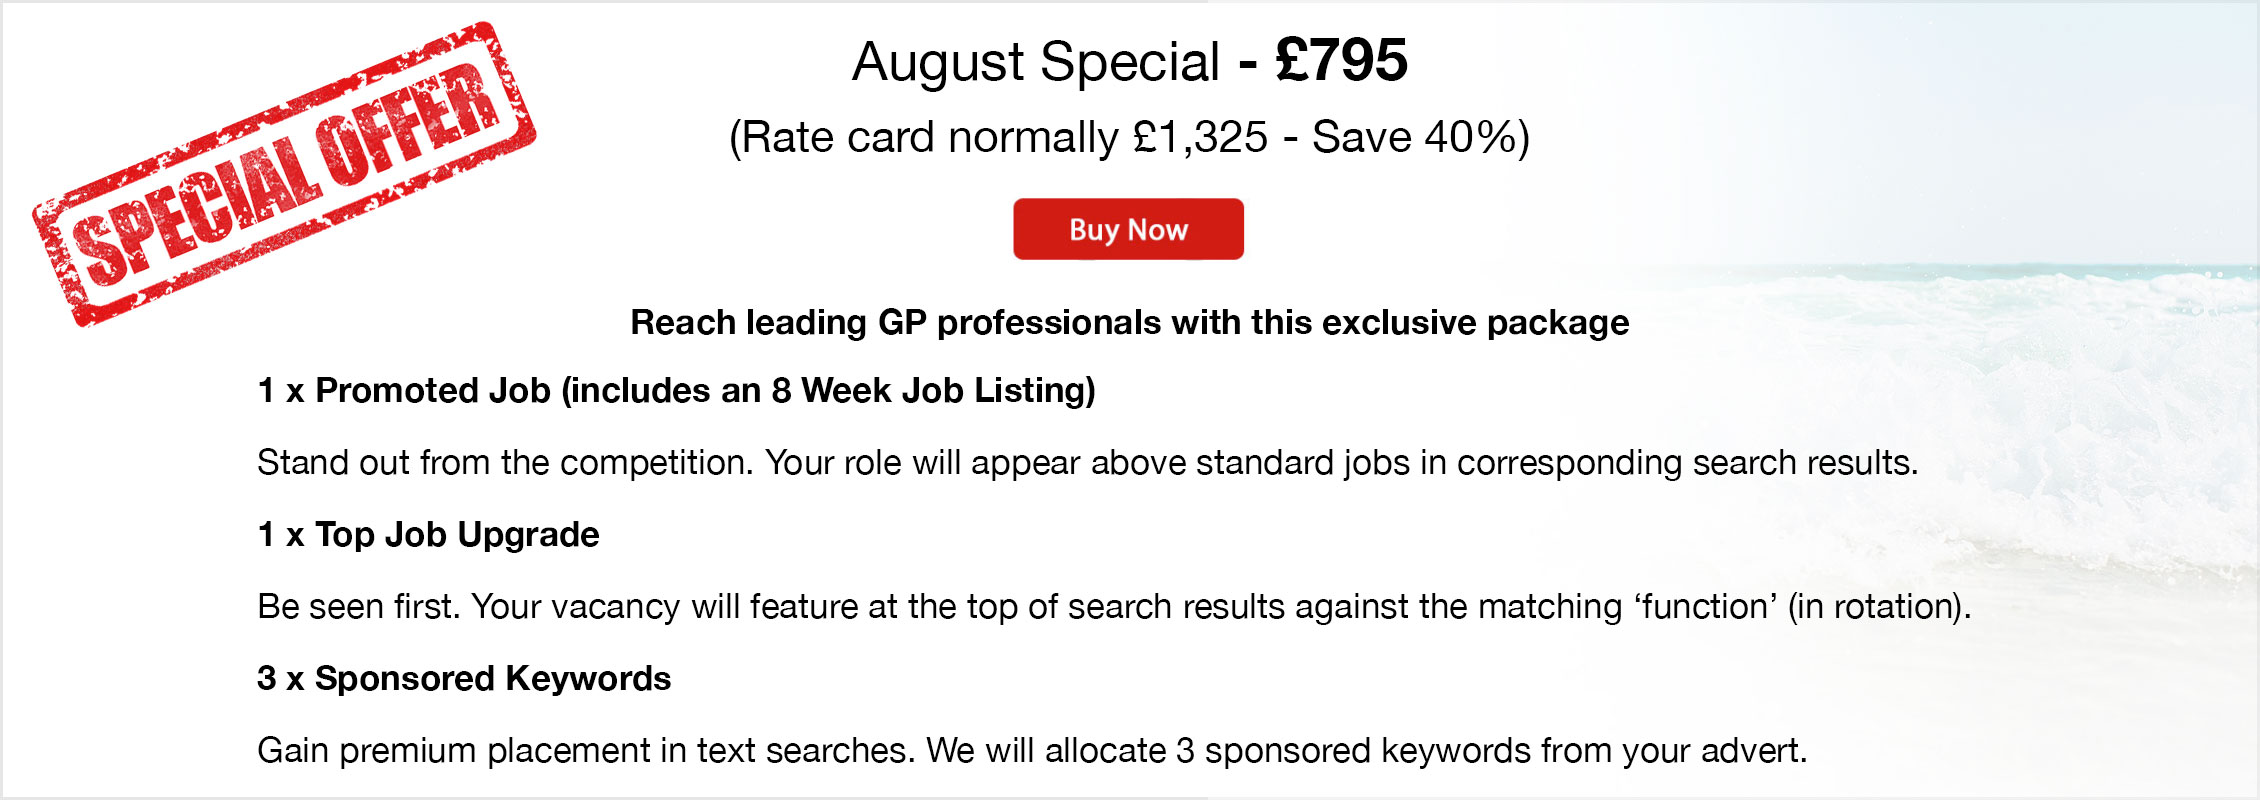 Special Offer. August Special - £795 (Rate card normally £1,325 - Save 40%). Buy Now. Reach leading GP professionals with this exclusive package. 